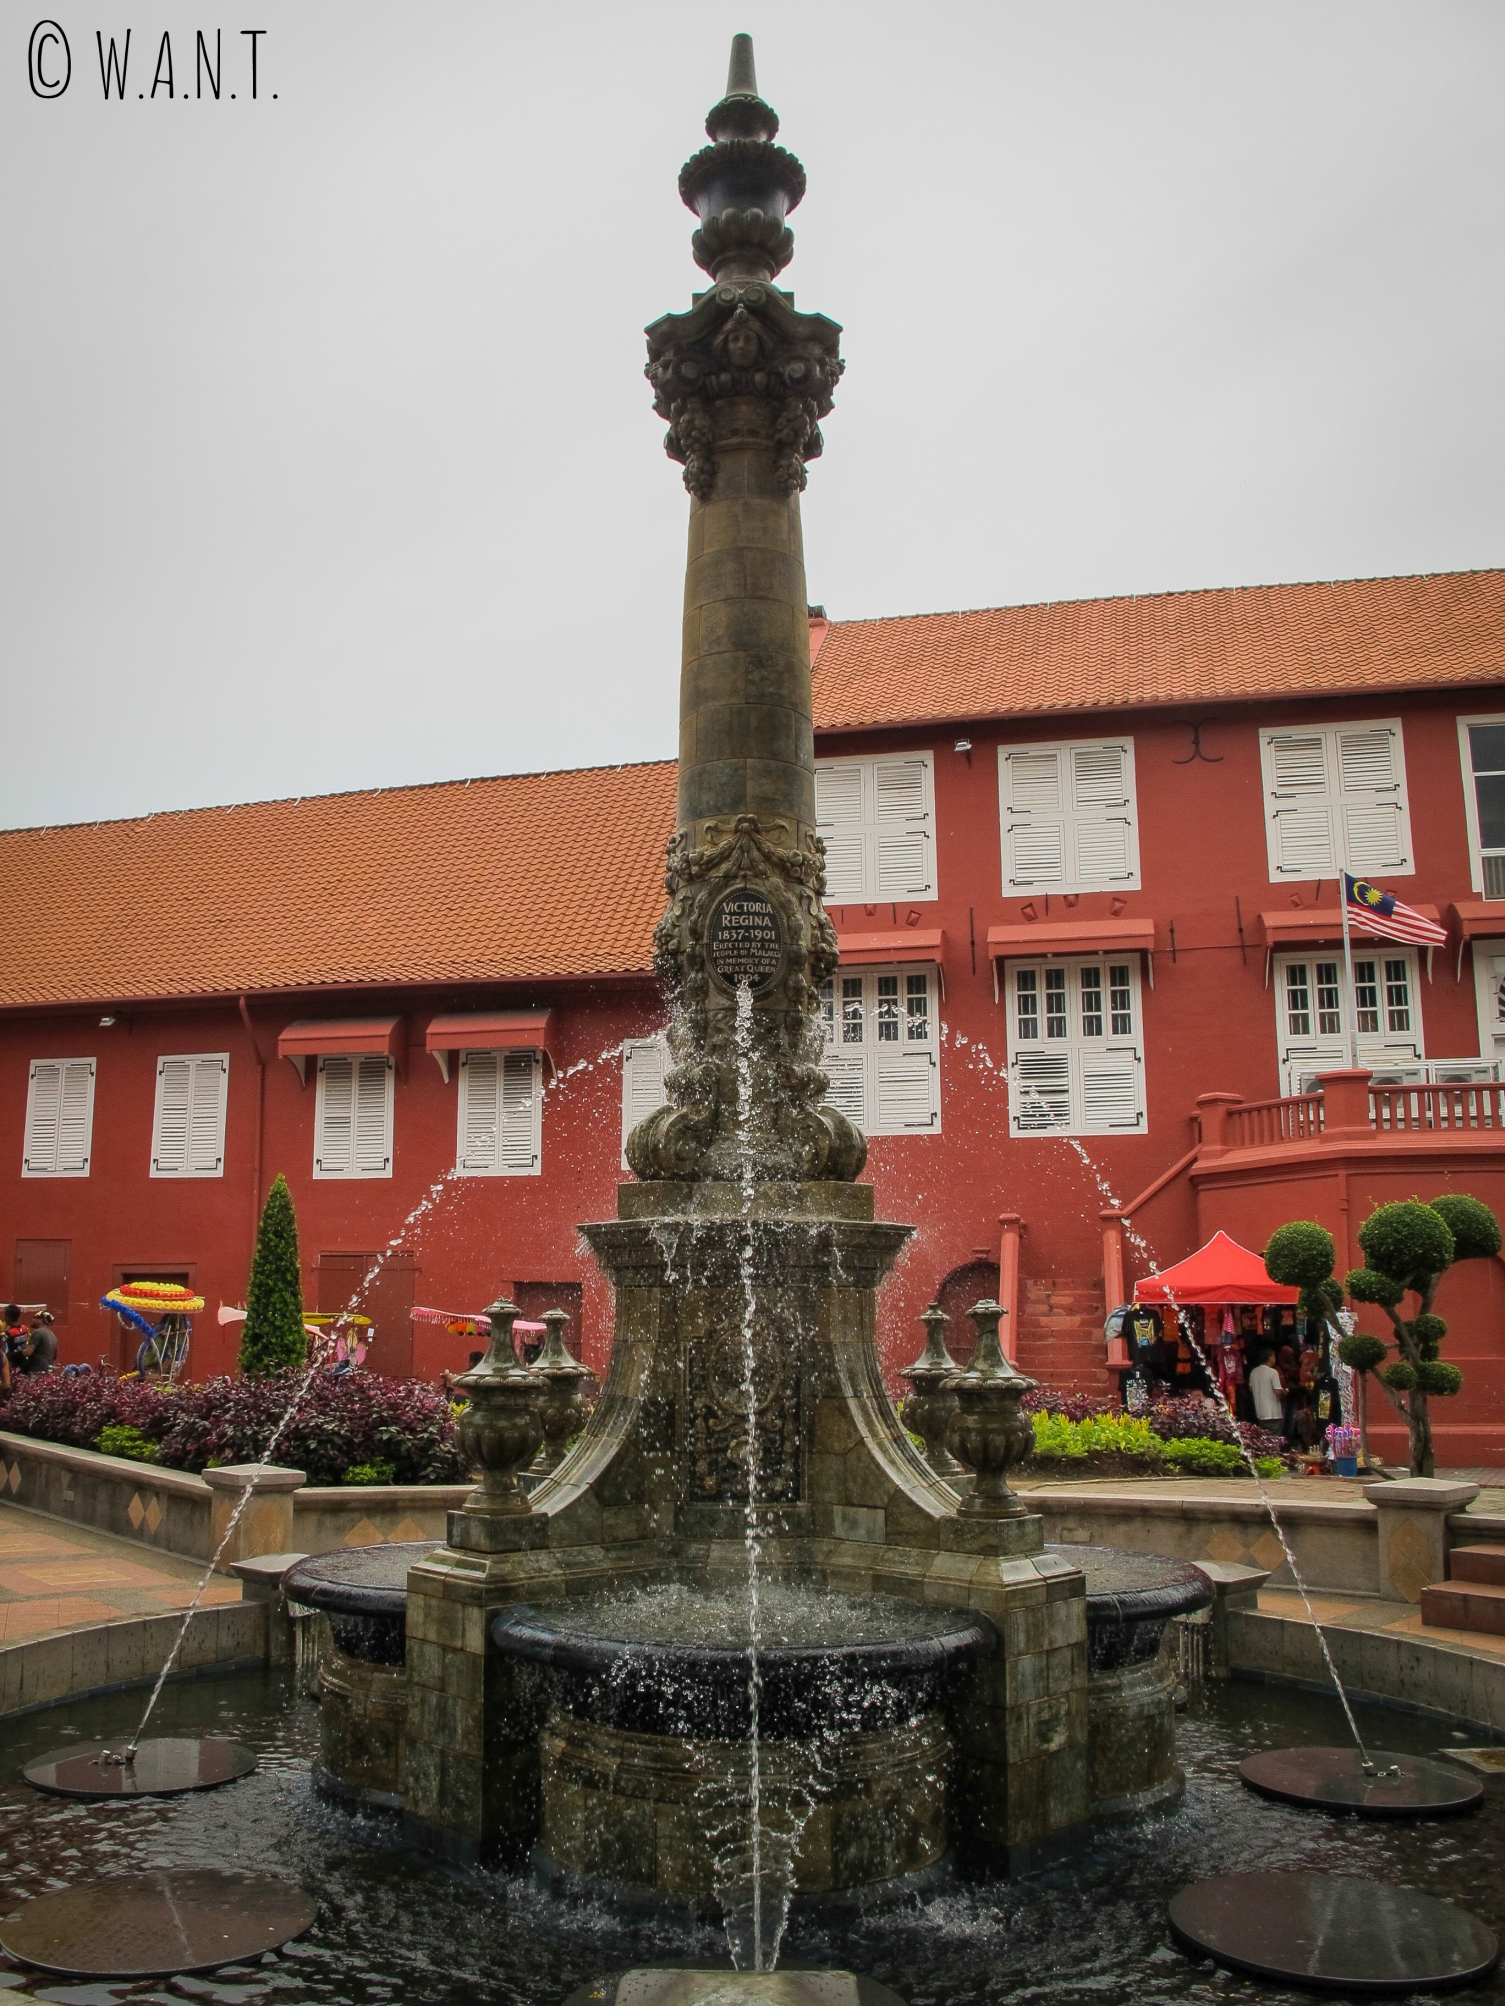 Fontaine Queen Victoria sur la place Dutch Square de Malacca